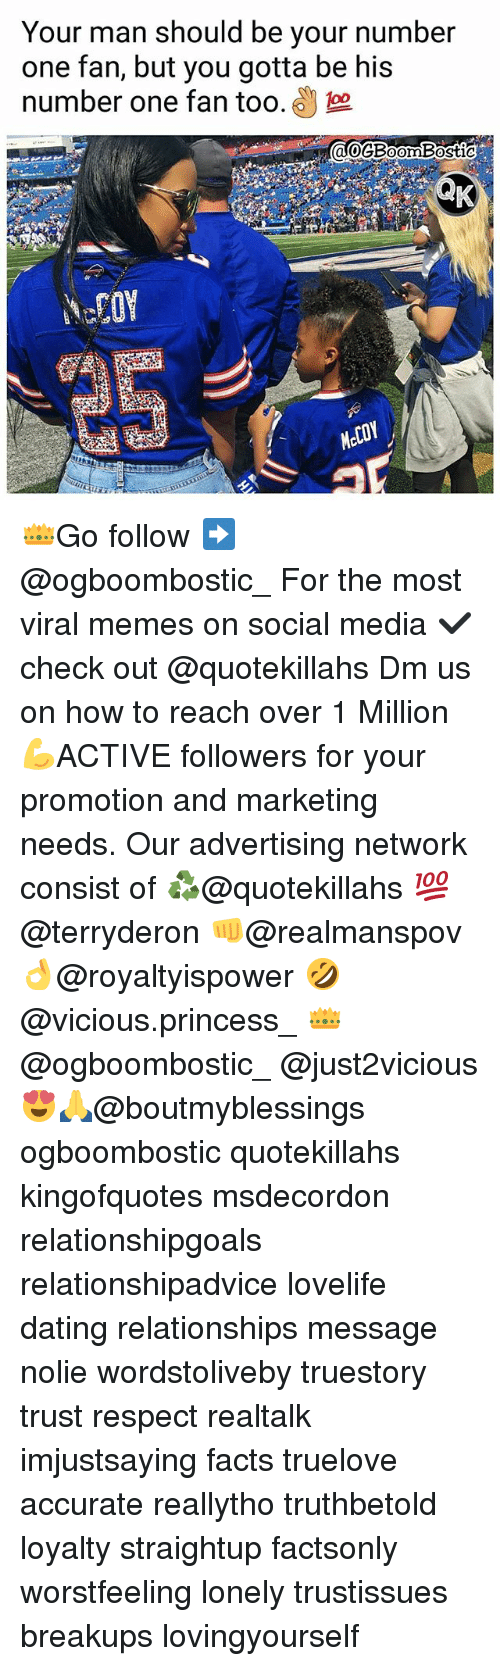 fanning: Your man should be vour number  one fan, but you gotta be his  number one fan too. 3  0GBoomBostiC  Mel 👑Go follow ➡@ogboombostic_ For the most viral memes on social media ✔check out @quotekillahs Dm us on how to reach over 1 Million💪ACTIVE followers for your promotion and marketing needs. Our advertising network consist of ♻@quotekillahs 💯@terryderon 👊@realmanspov 👌@royaltyispower 🤣@vicious.princess_ 👑@ogboombostic_ @just2vicious😍🙏@boutmyblessings ogboombostic quotekillahs kingofquotes msdecordon relationshipgoals relationshipadvice lovelife dating relationships message nolie wordstoliveby truestory trust respect realtalk imjustsaying facts truelove accurate reallytho truthbetold loyalty straightup factsonly worstfeeling lonely trustissues breakups lovingyourself